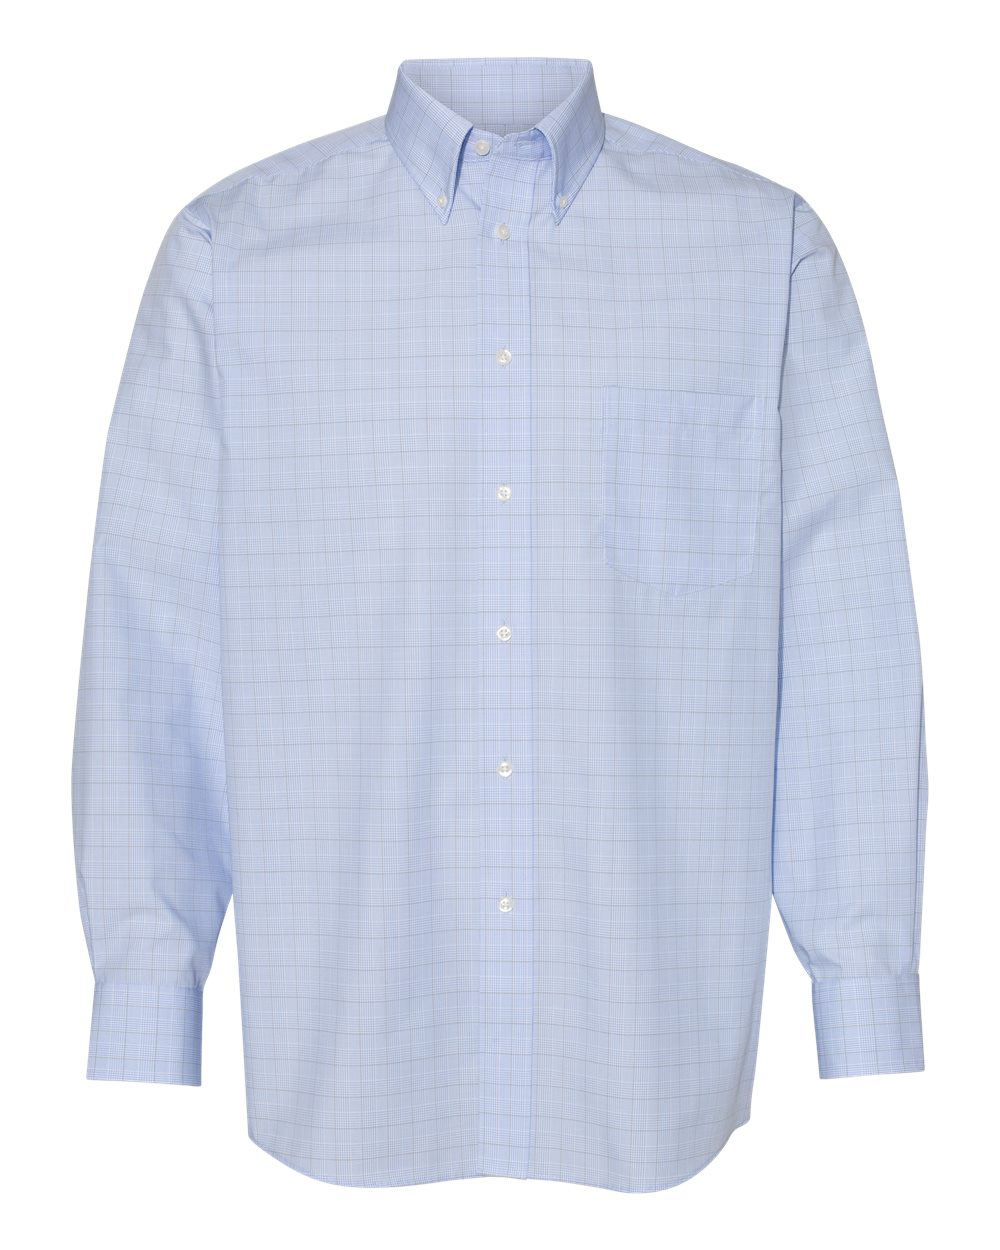 Blue Suitings Non-Iron Patterned Shirt